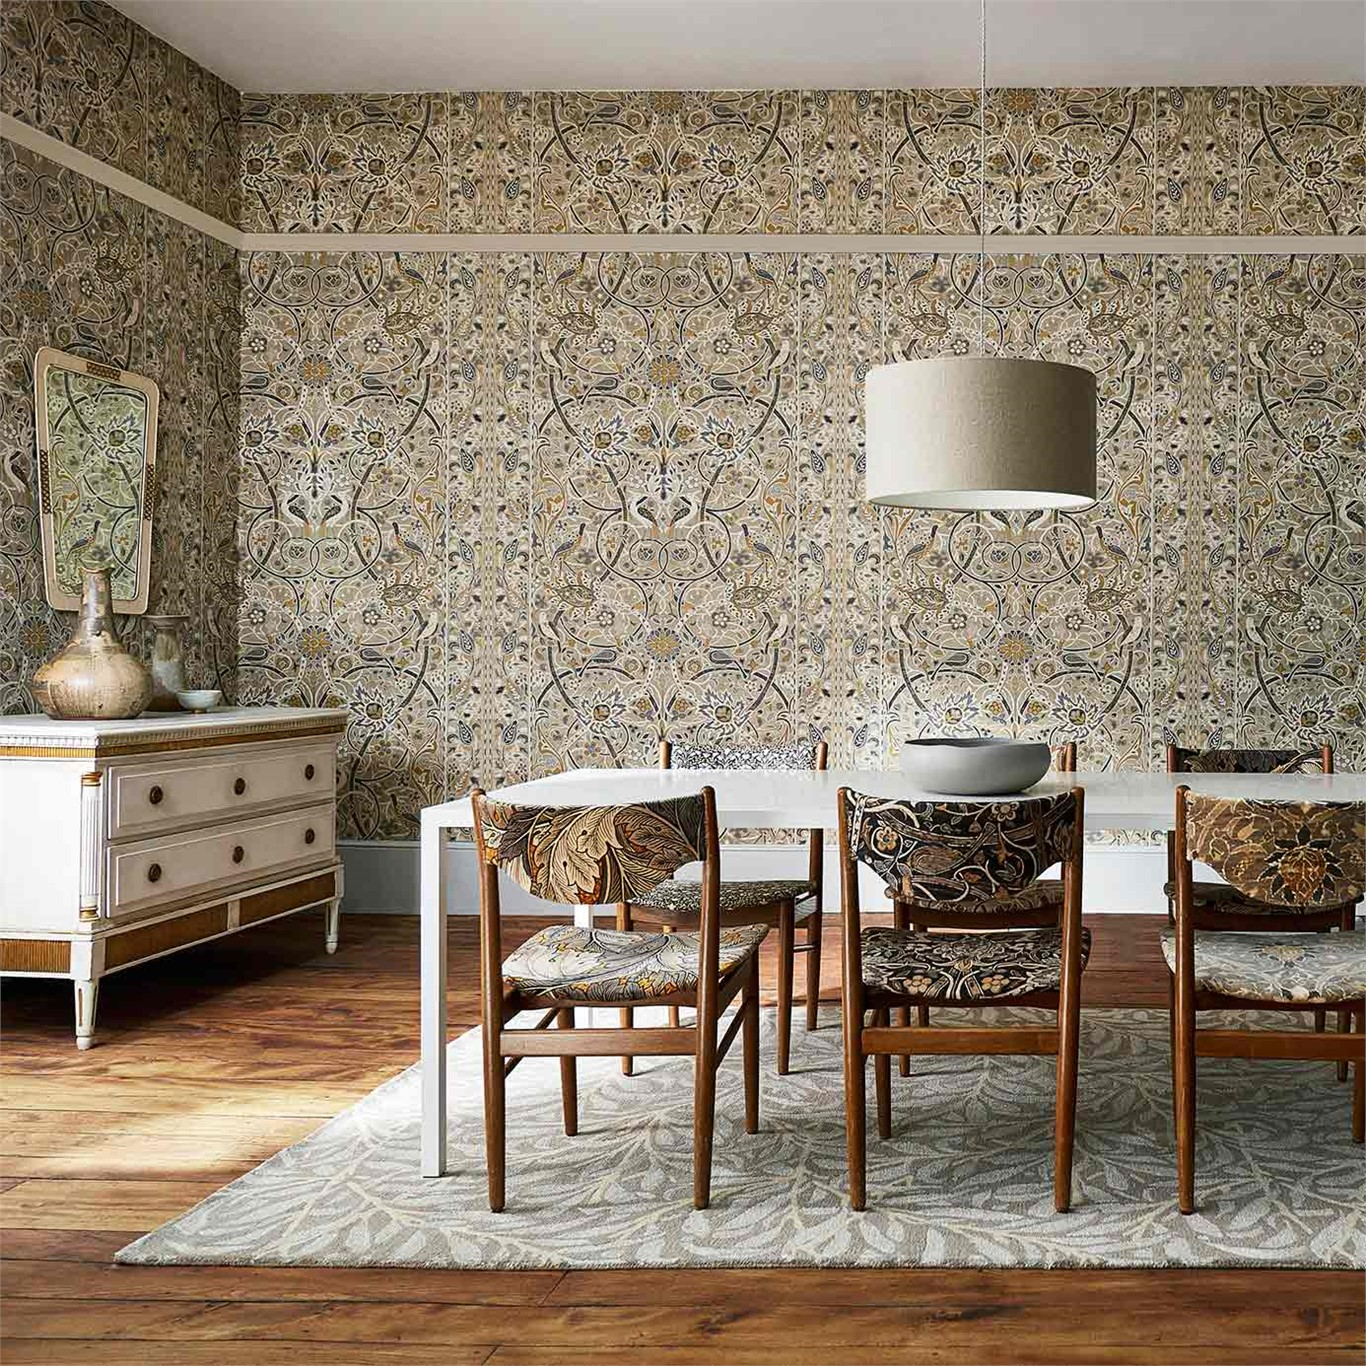 1-Morris-Bullerswood-dining-room-damask-neutral-style-library